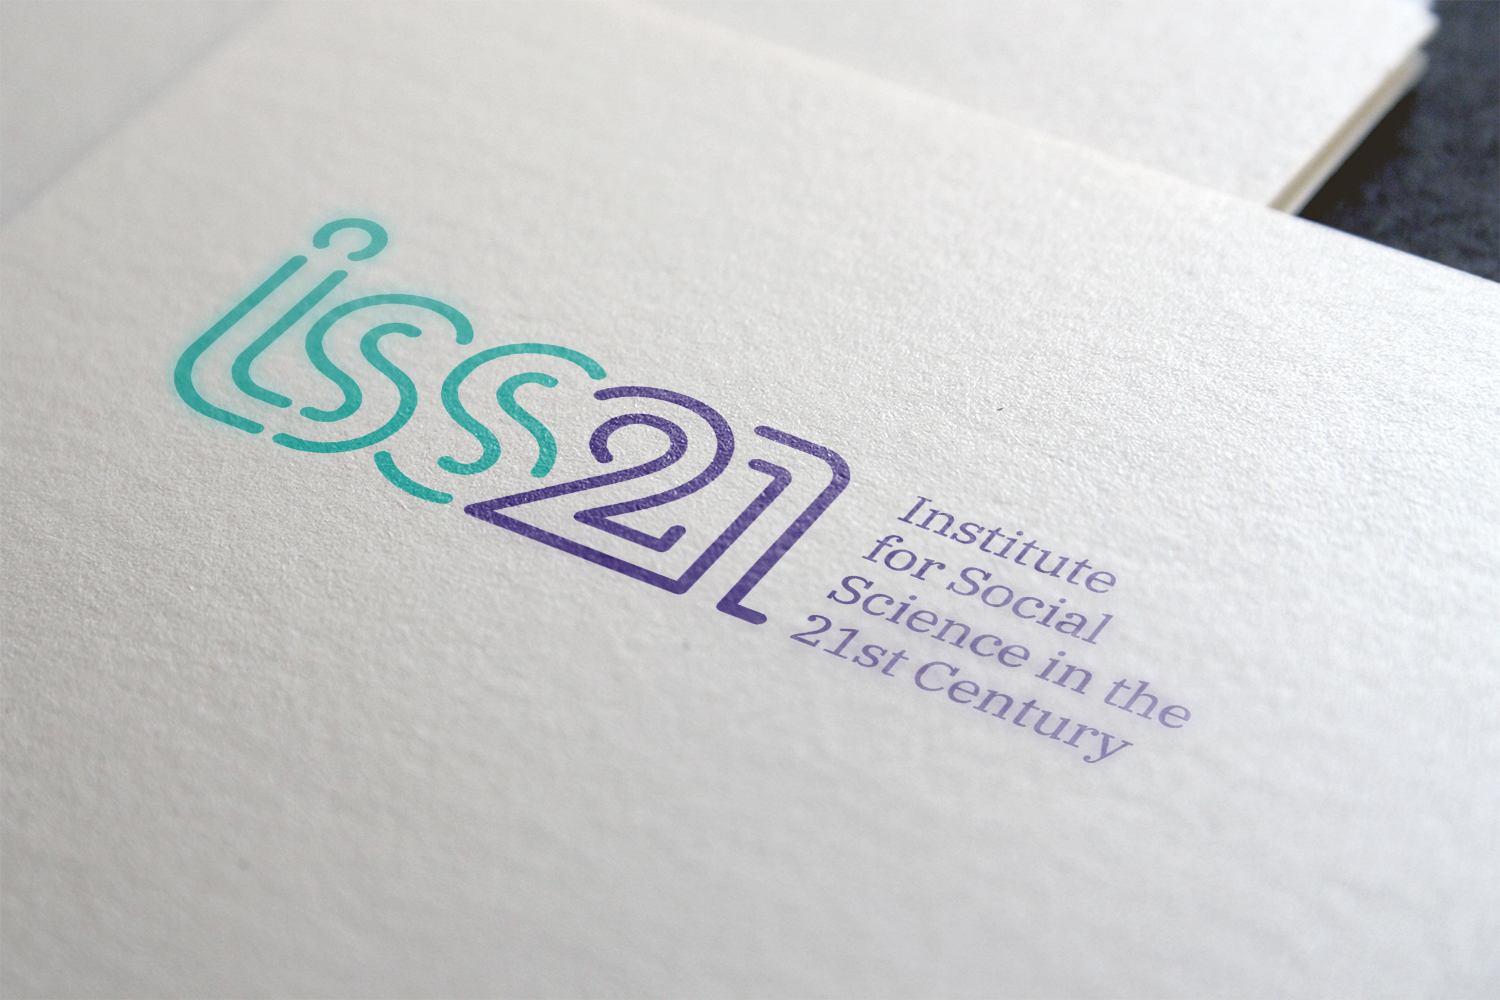 ISS21 rebrand -  1SS21, UCC